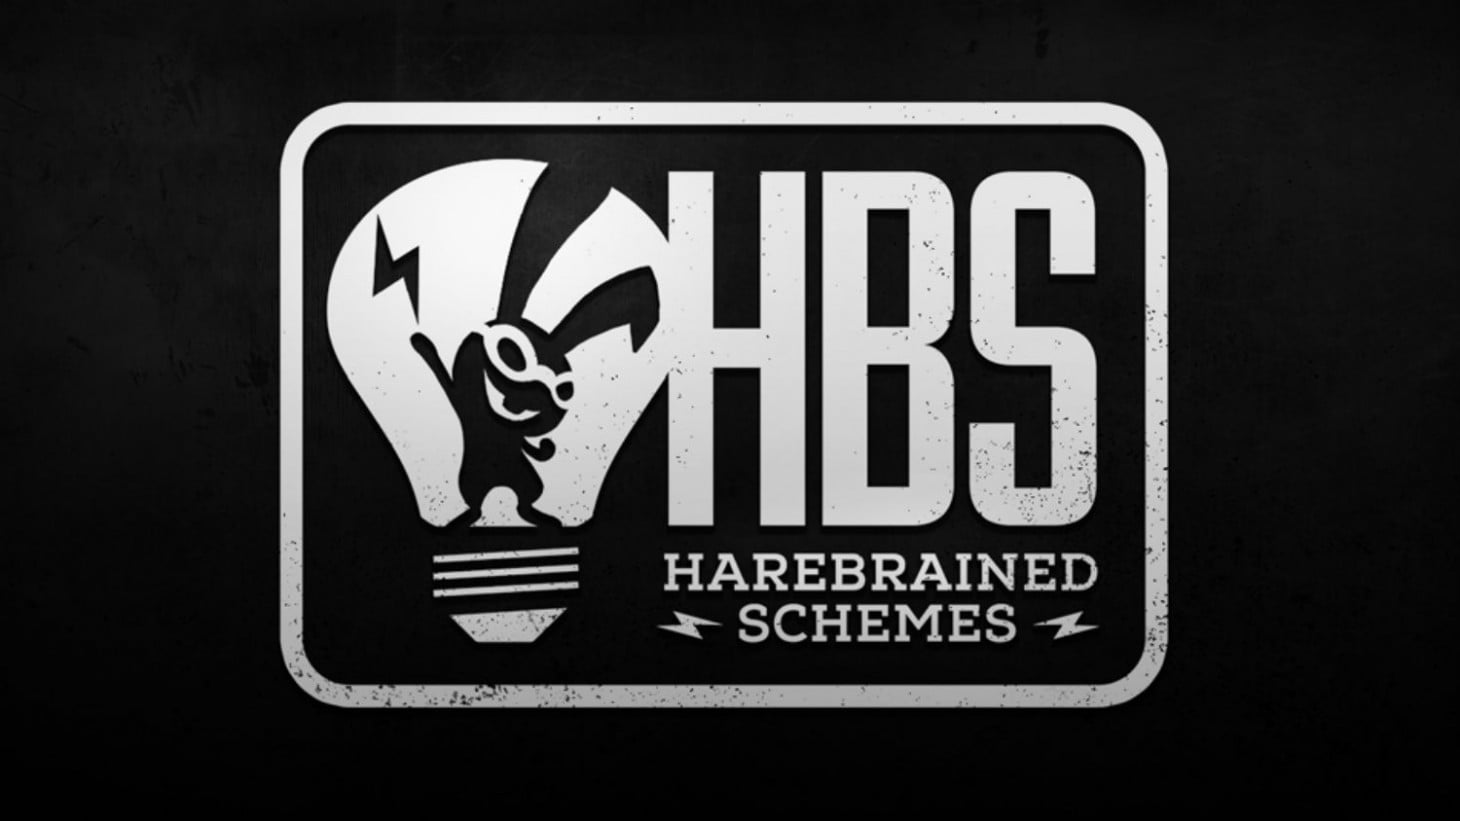 Harebrained Schemes